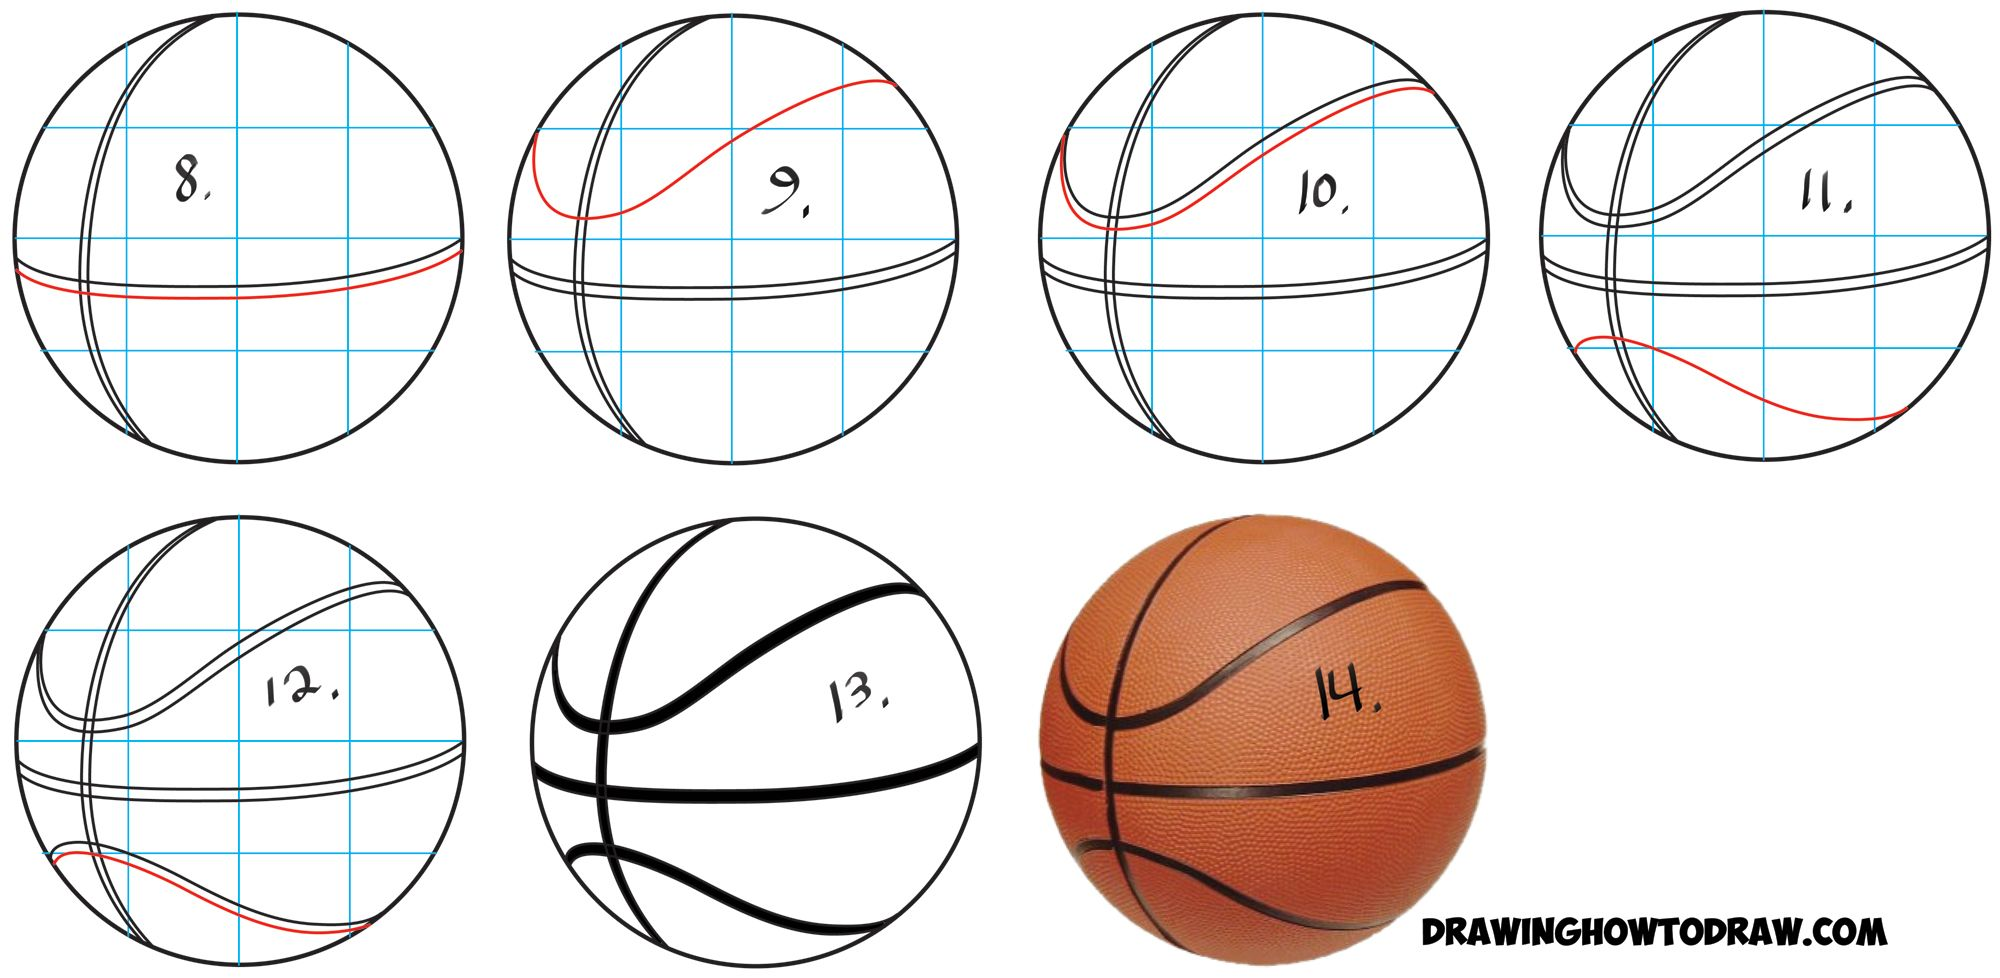 How To Draw A Basketball In Easy Step By Step Drawing Tutorial How To Draw Step By Step Drawing Tutorials Ball Drawing Drawing Tutorial 3d Drawings